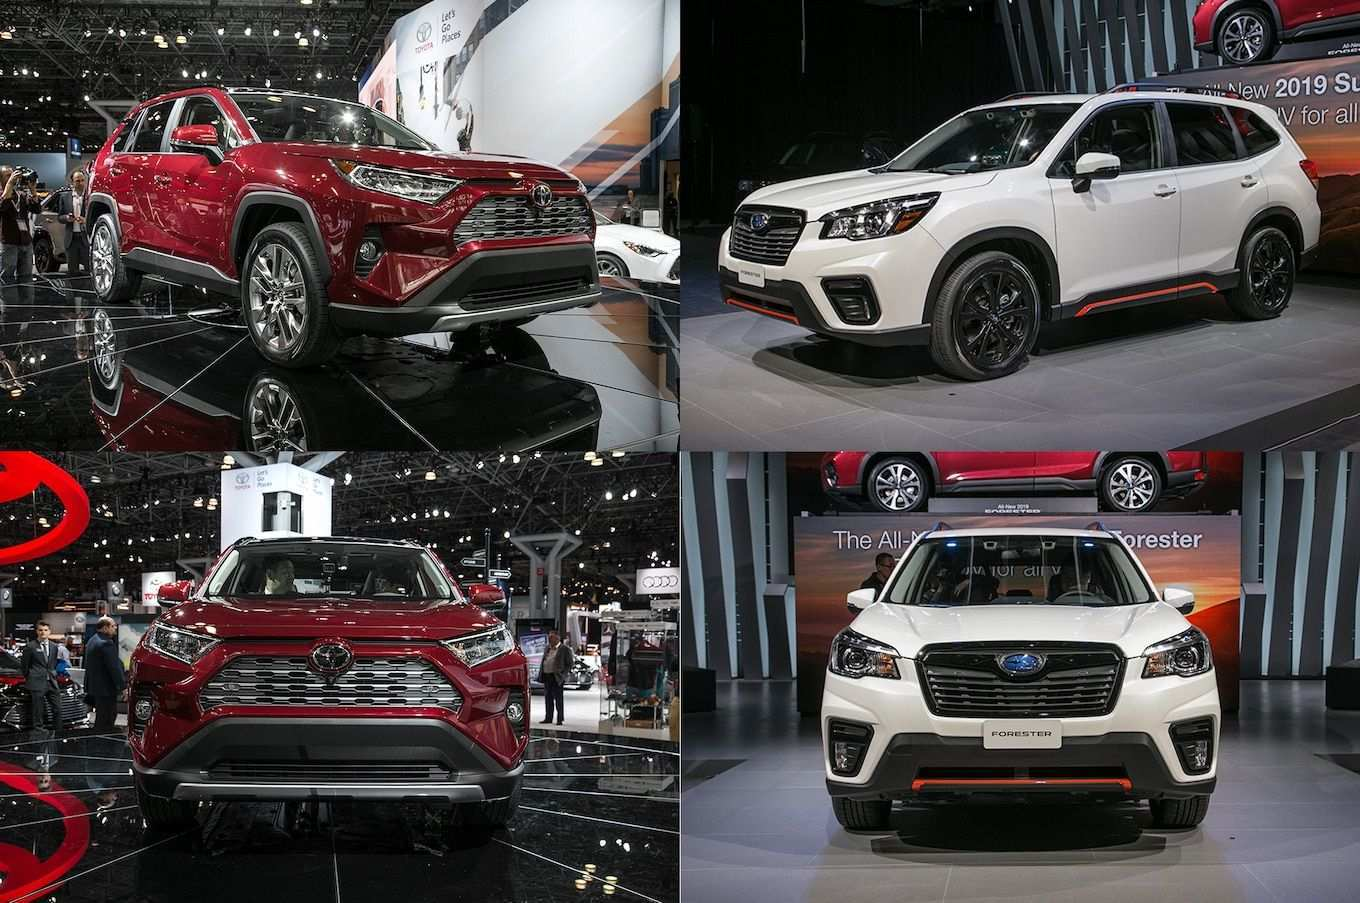 15 New Subaru Forester 2019 Ground Clearance Rumors Spesification by Subaru Forester 2019 Ground Clearance Rumors